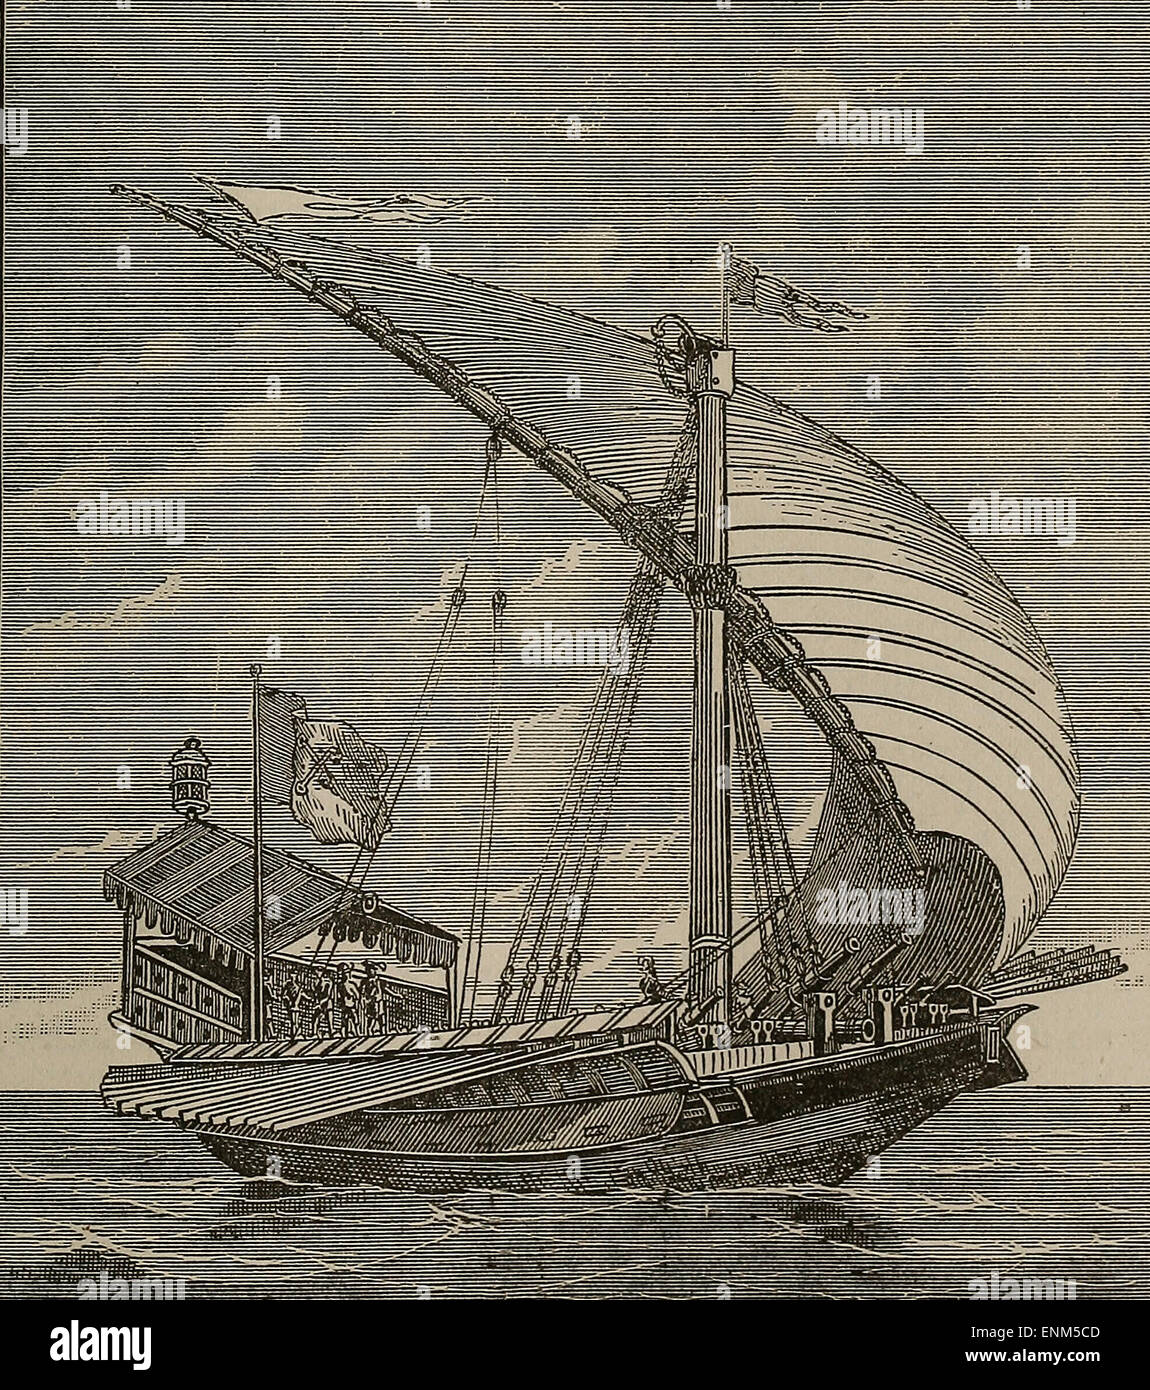 Pontifical Galley - 1550, with sails and oars, and provided with heavy artillery - Stock Image